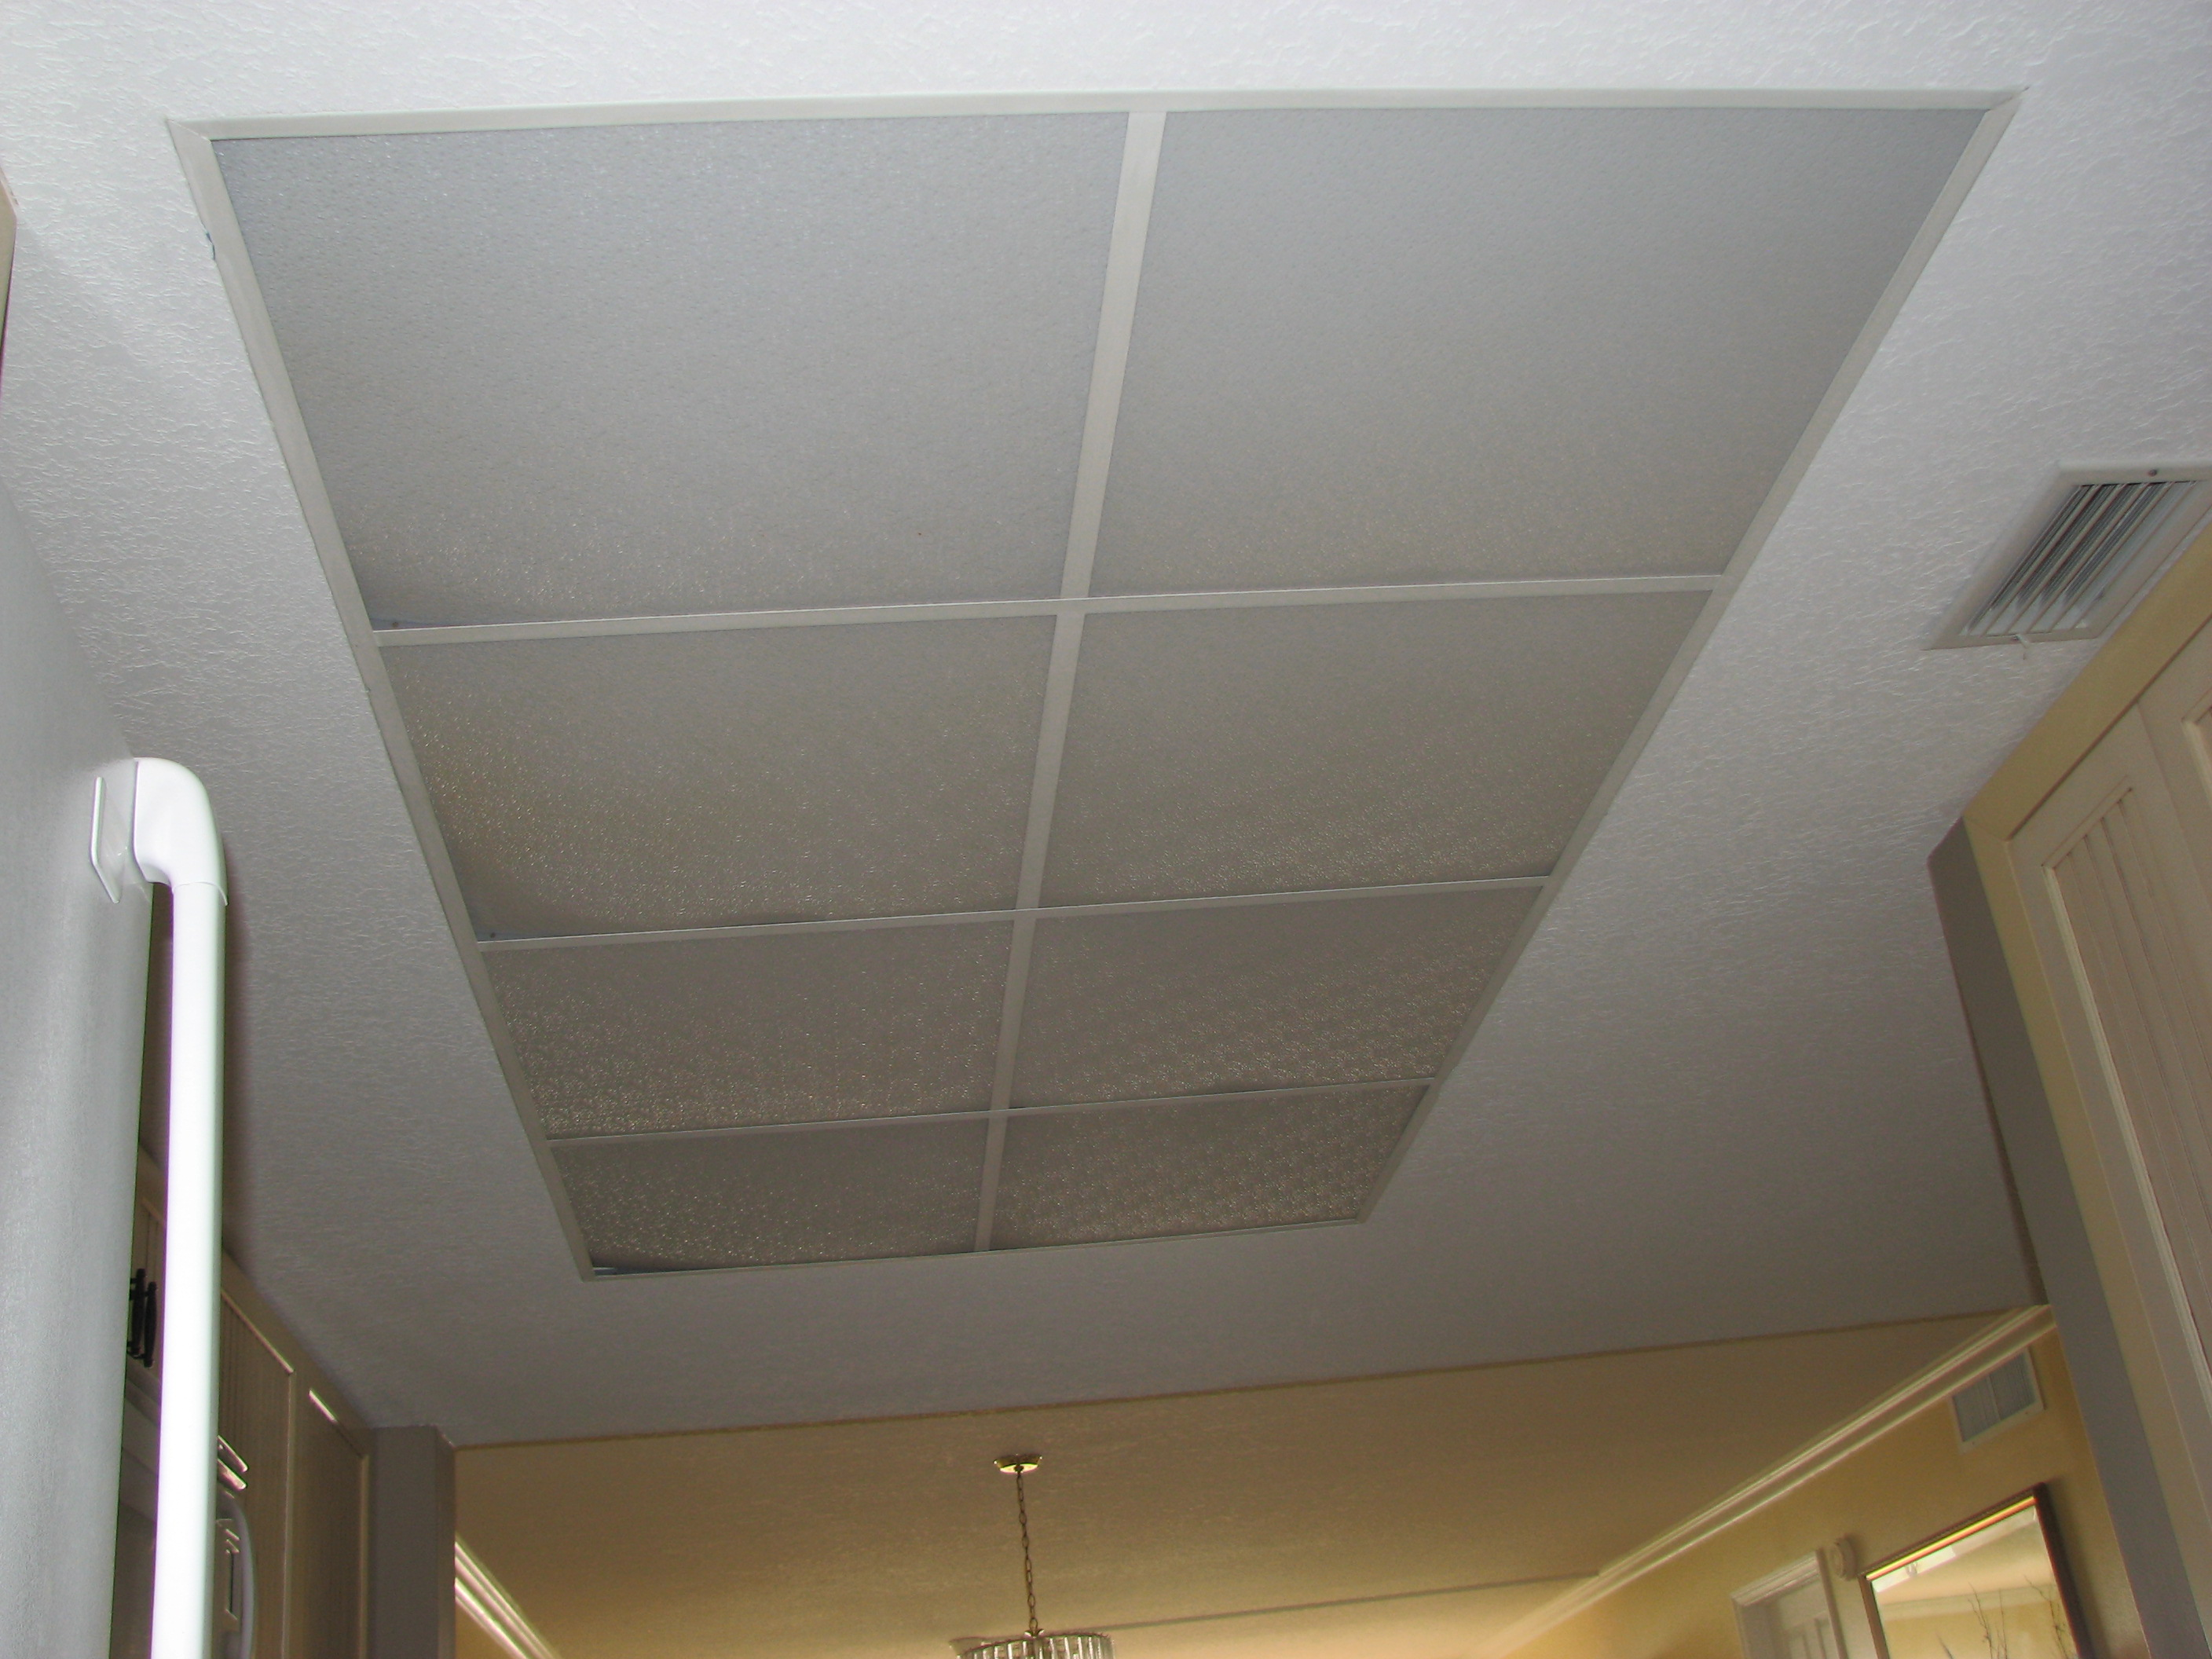 Cocoa Beach condo kitchen ceiling light- Before